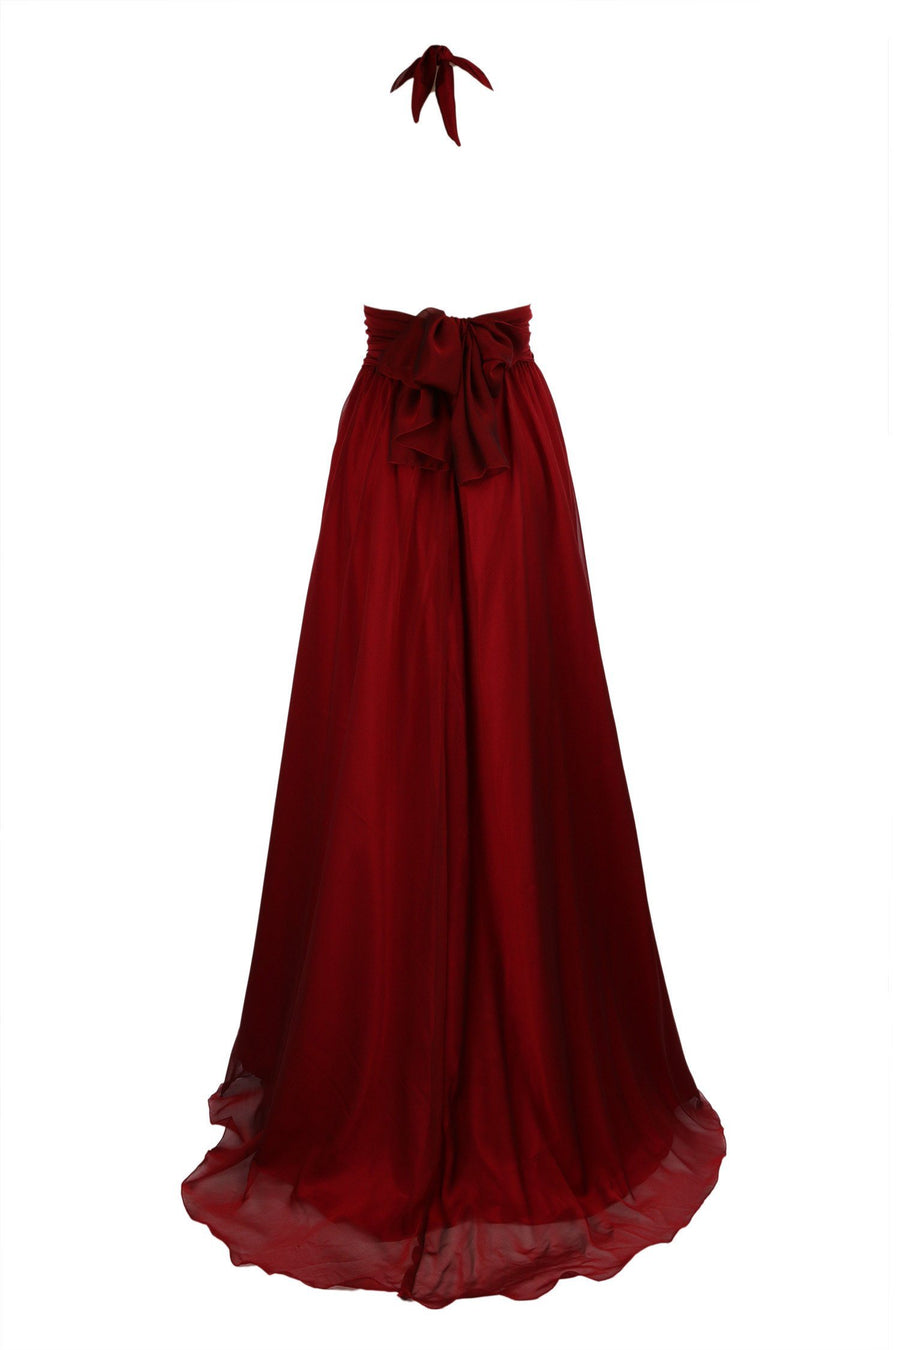 Shop Online Alida Gown in Ruby | Chiffon by Lucy Laurita - Leiela  Frockaholics Dresses